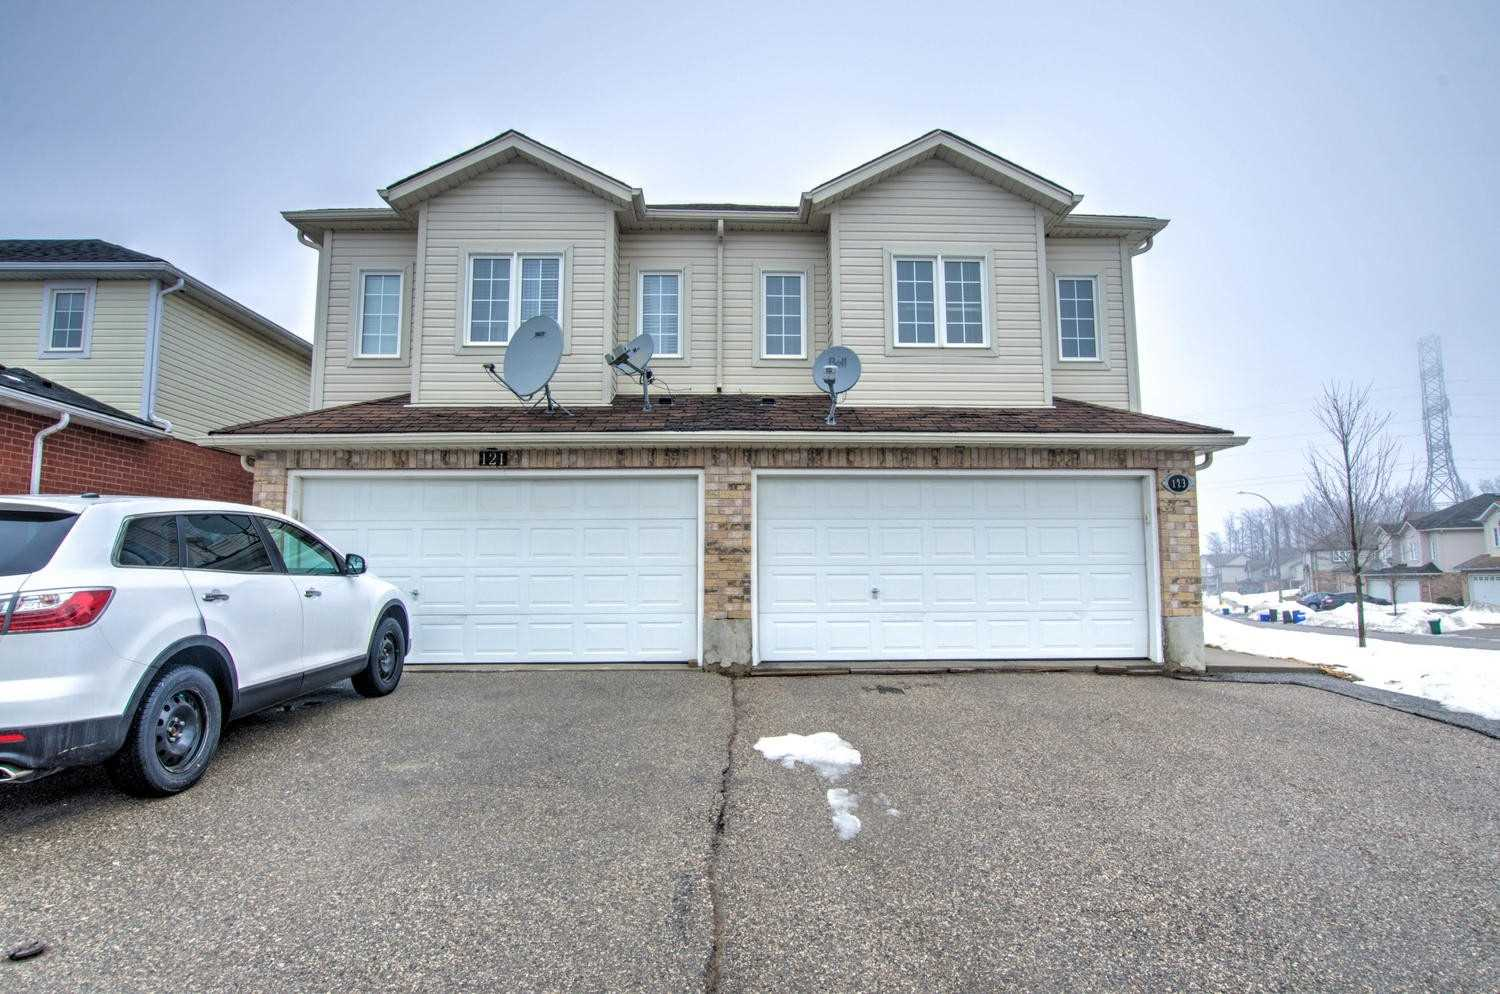 pictures of house for sale MLS: X4706031 located at 123 Snowdrop Cres, Kitchener N2E4G7